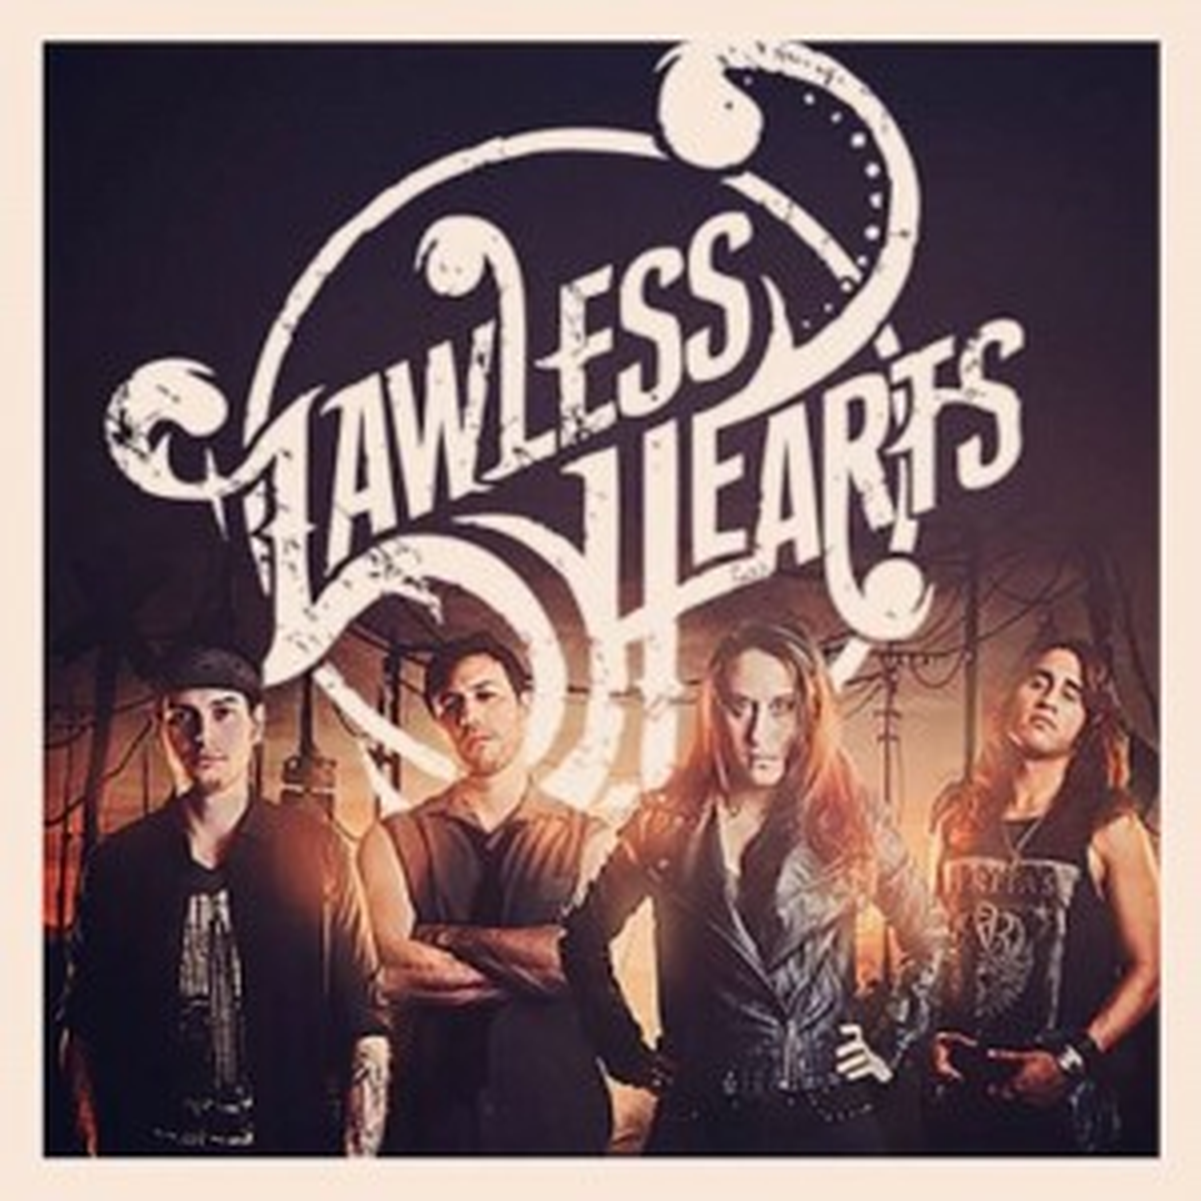 lawless.Hearts